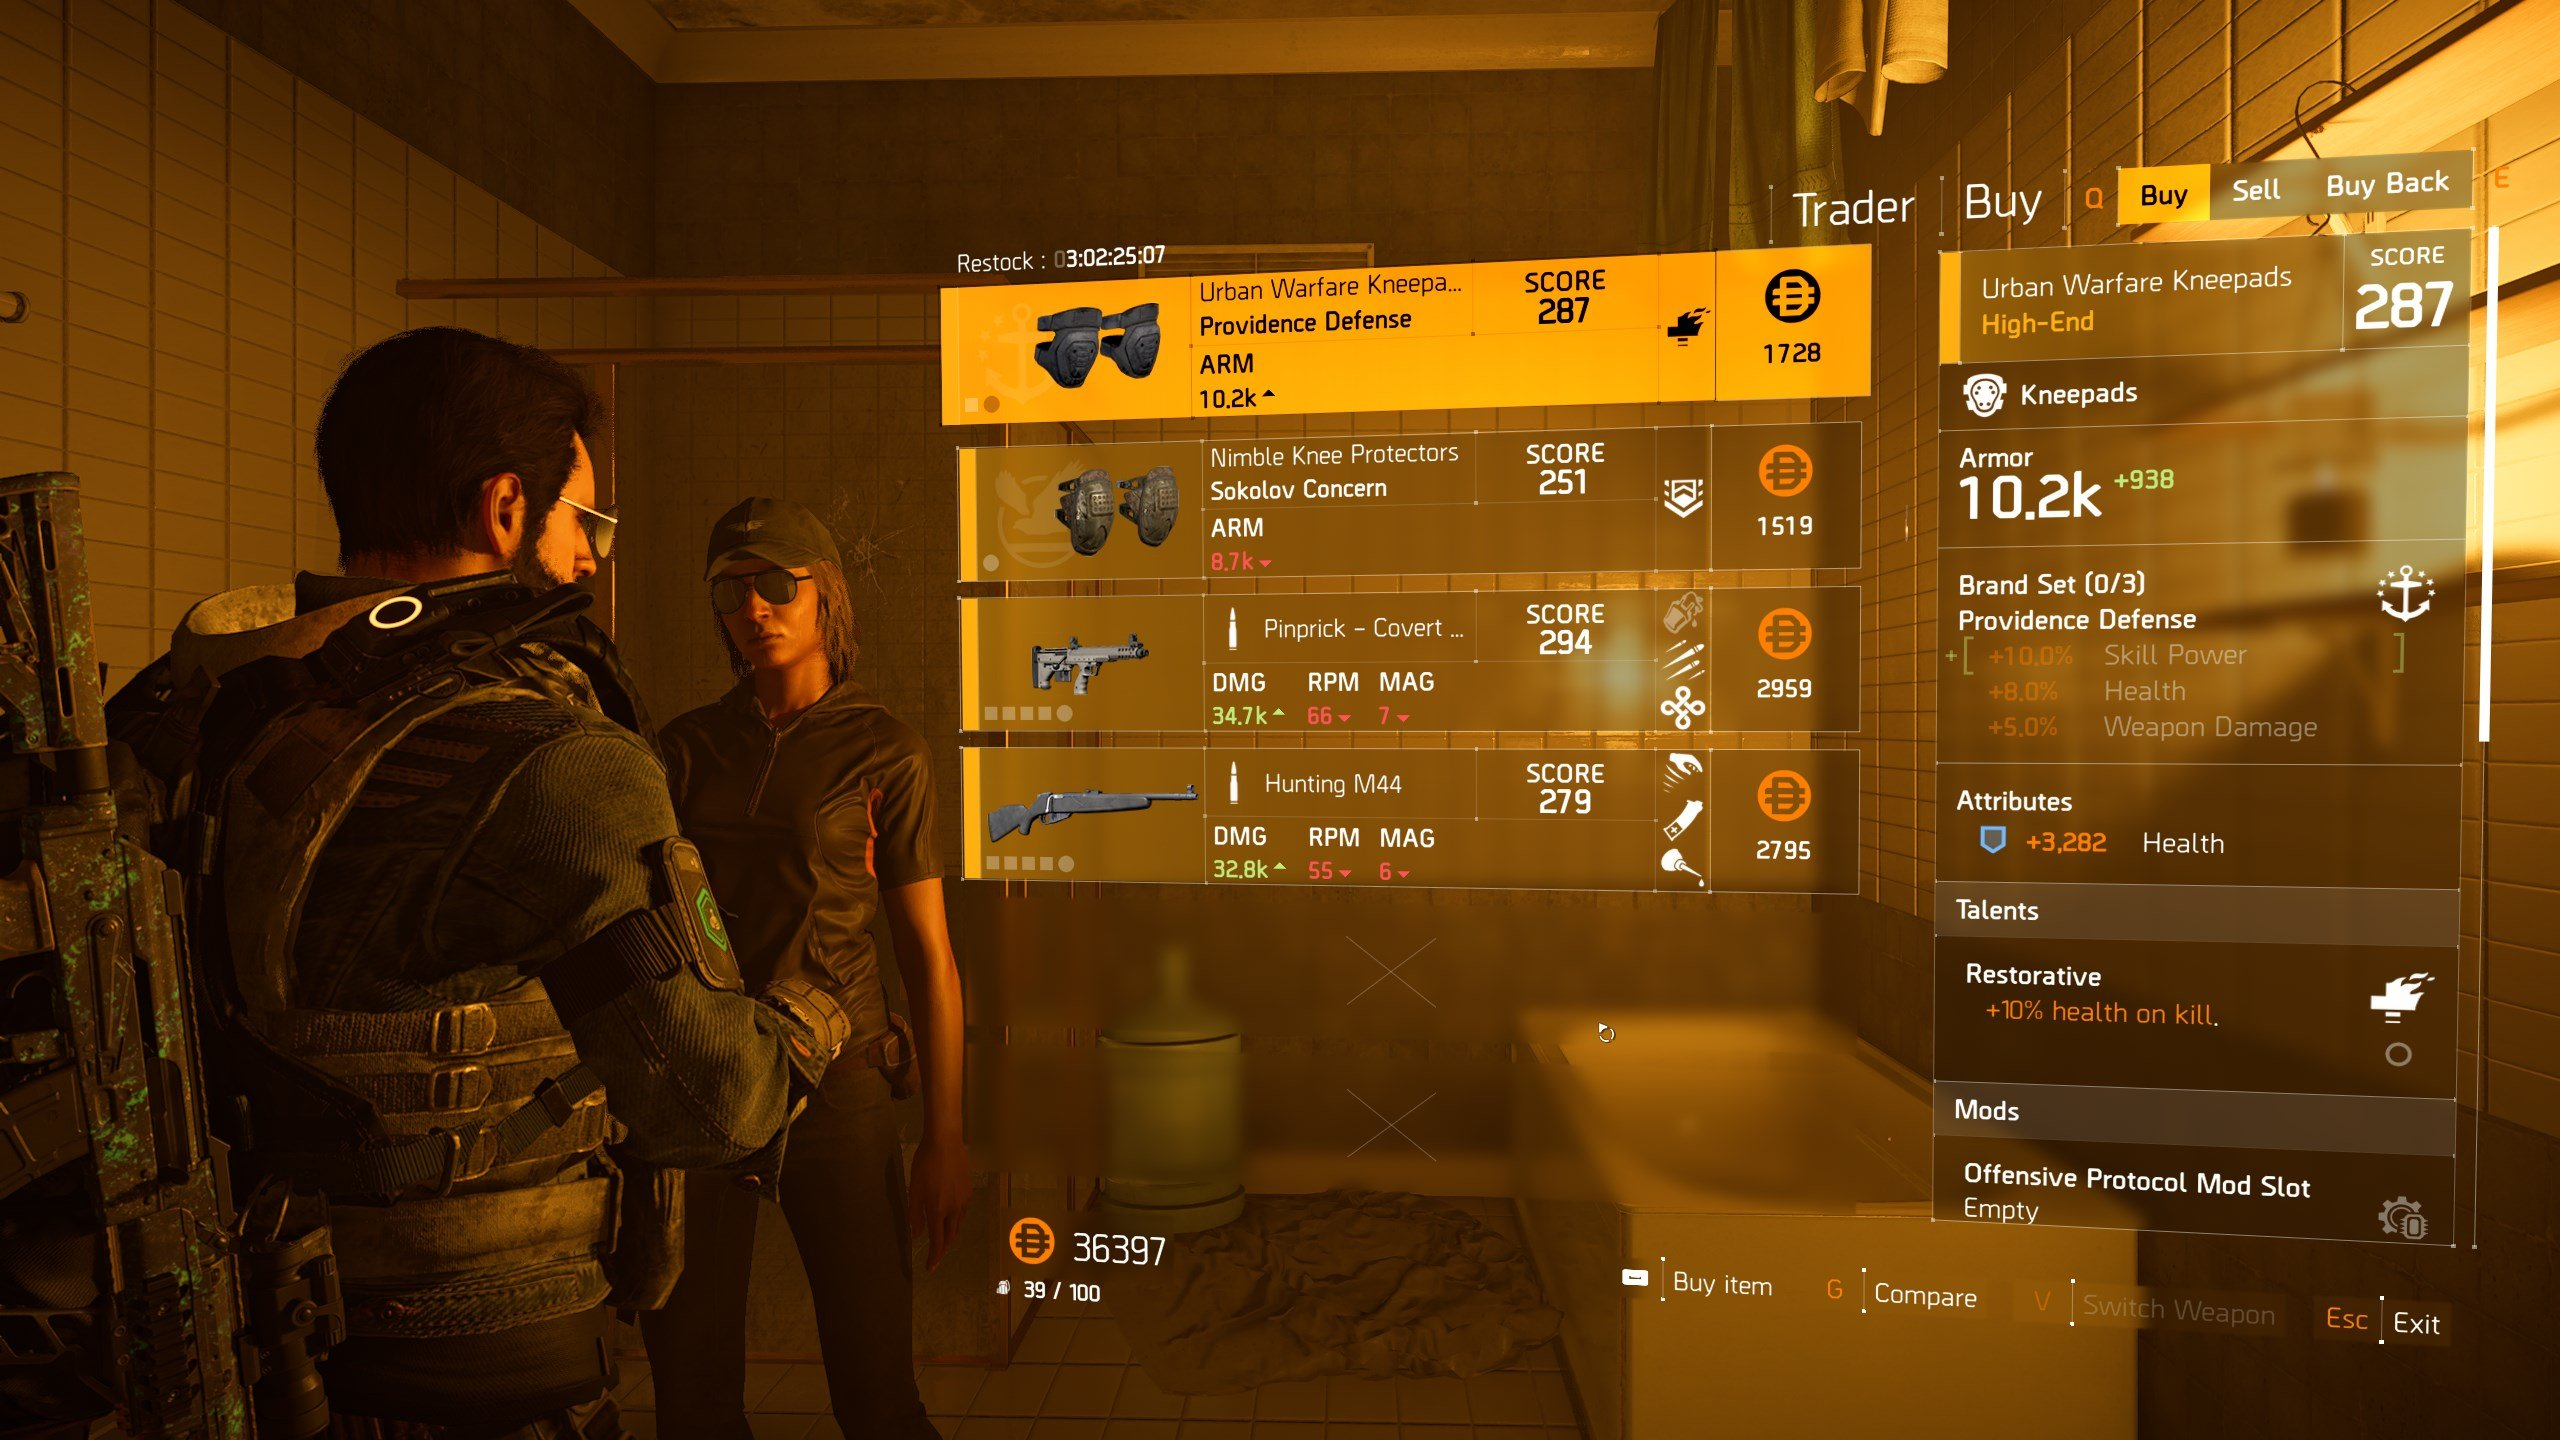 find the secret vendor in The Division 2 - items that Cassie Mendoza sells